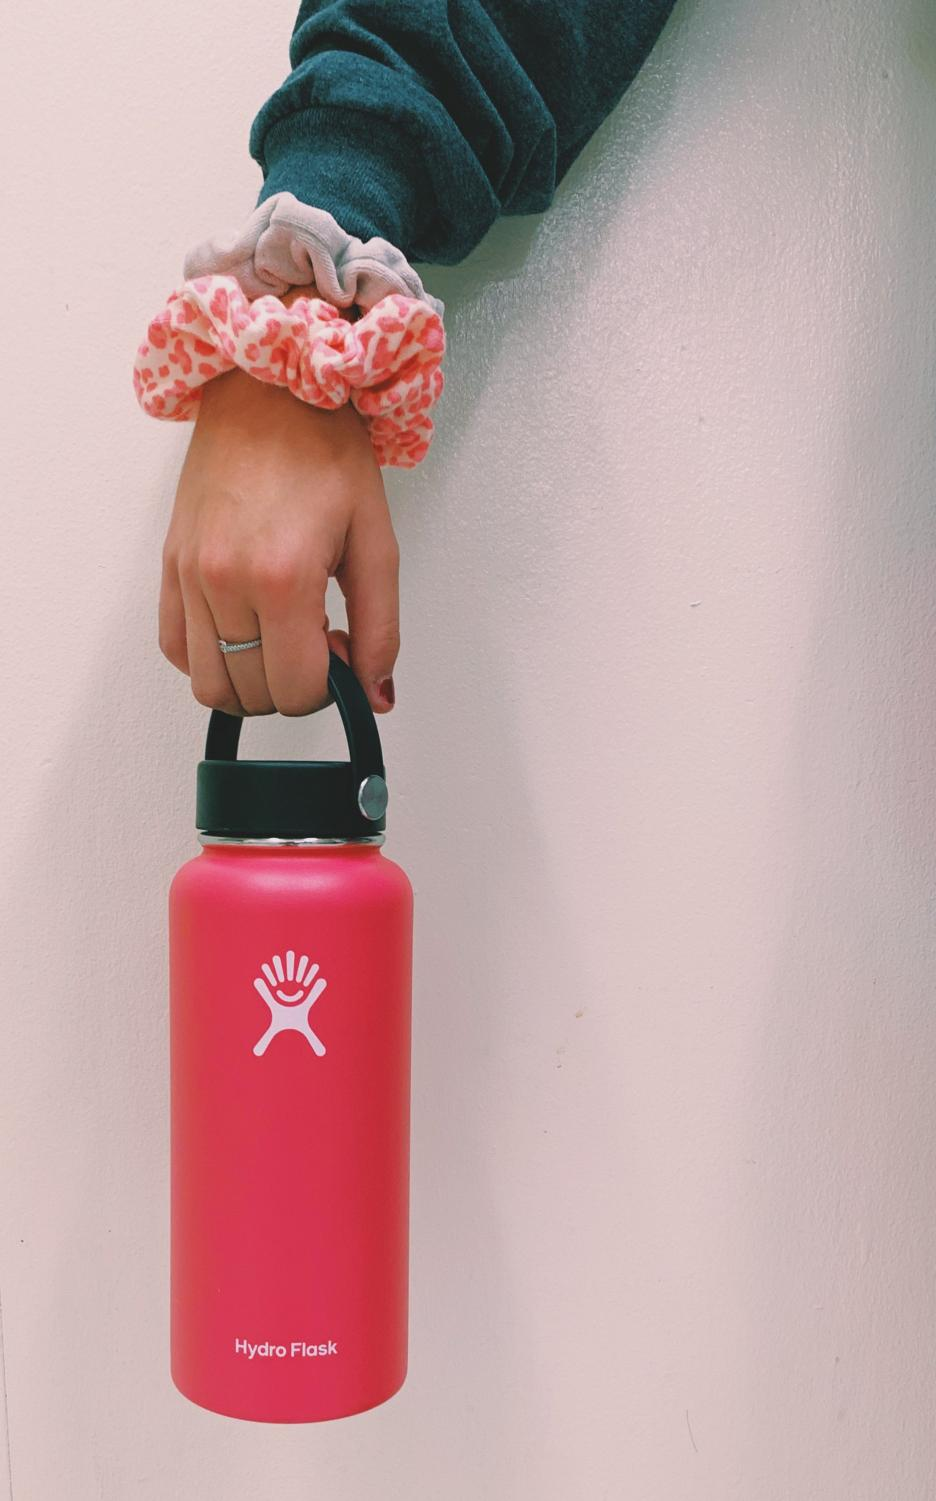 Ava Sorgenfrey gathers her hydro flask and scrunchies, two essentials which help to characterize the stereotypical